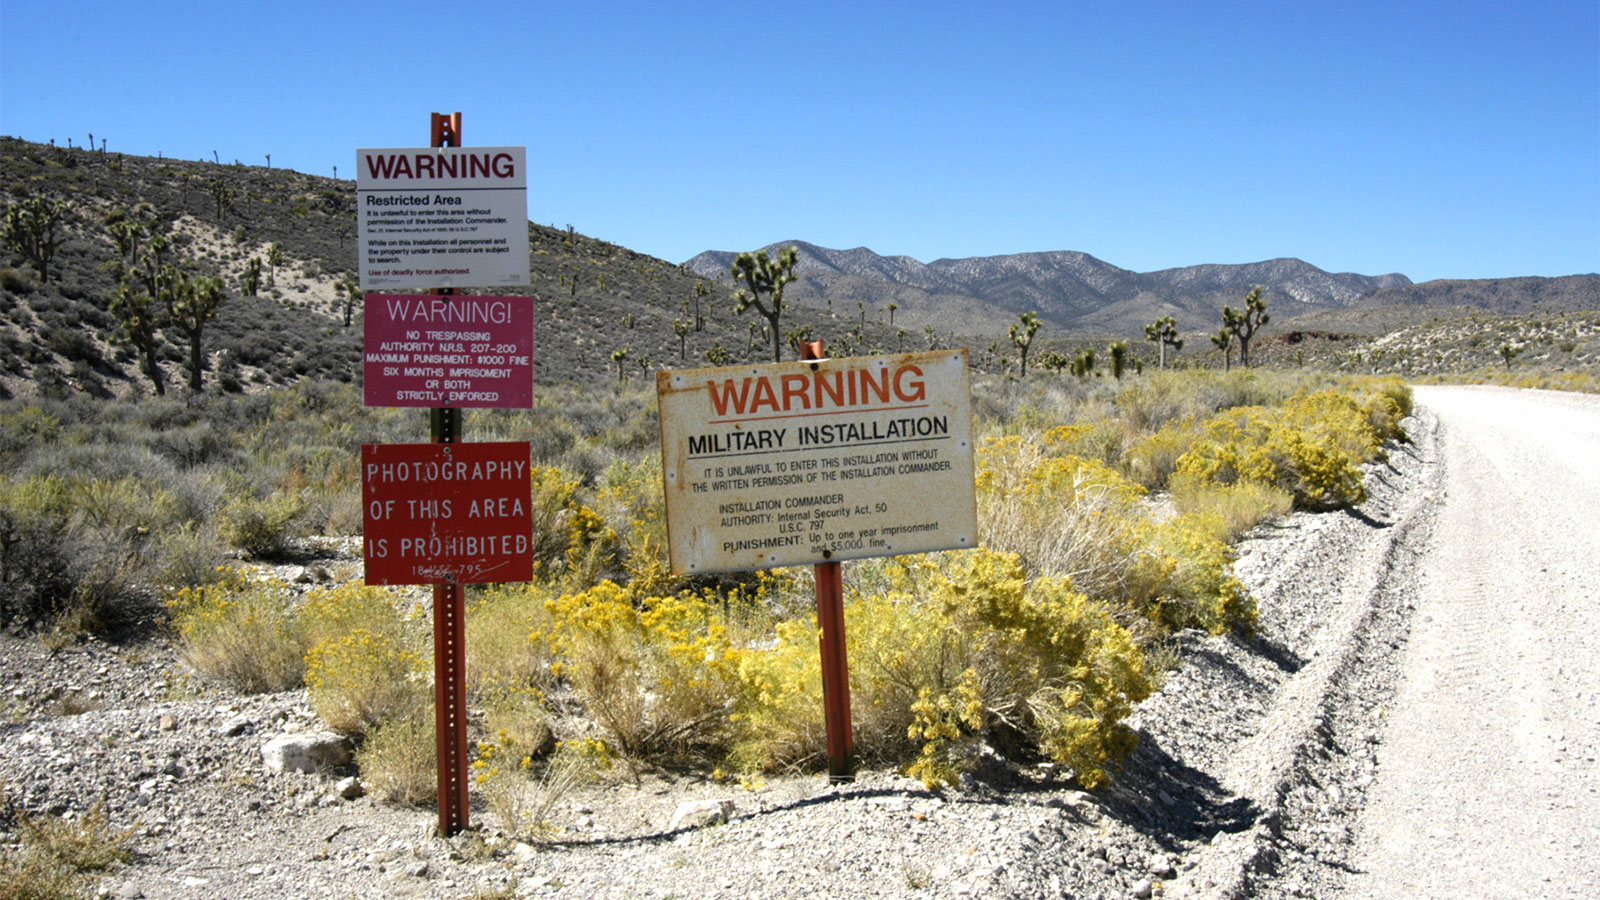 Getting to Area 51 - Area 51 Security | HowStuffWorks